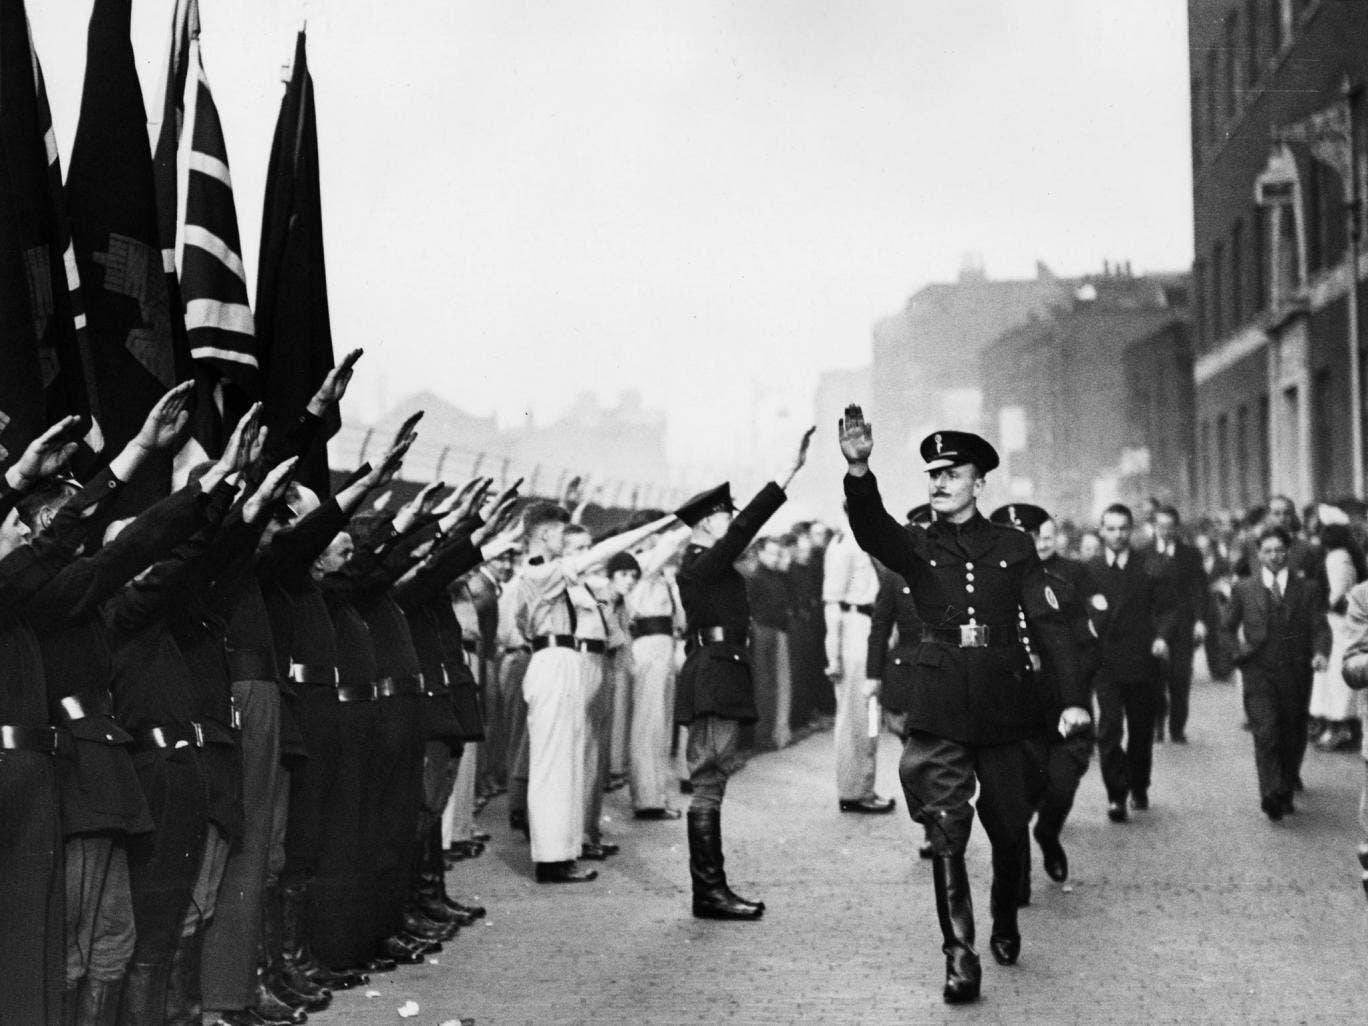 Sir Oswald Mosley, leader of the British Union of Fascists, in the 1930s